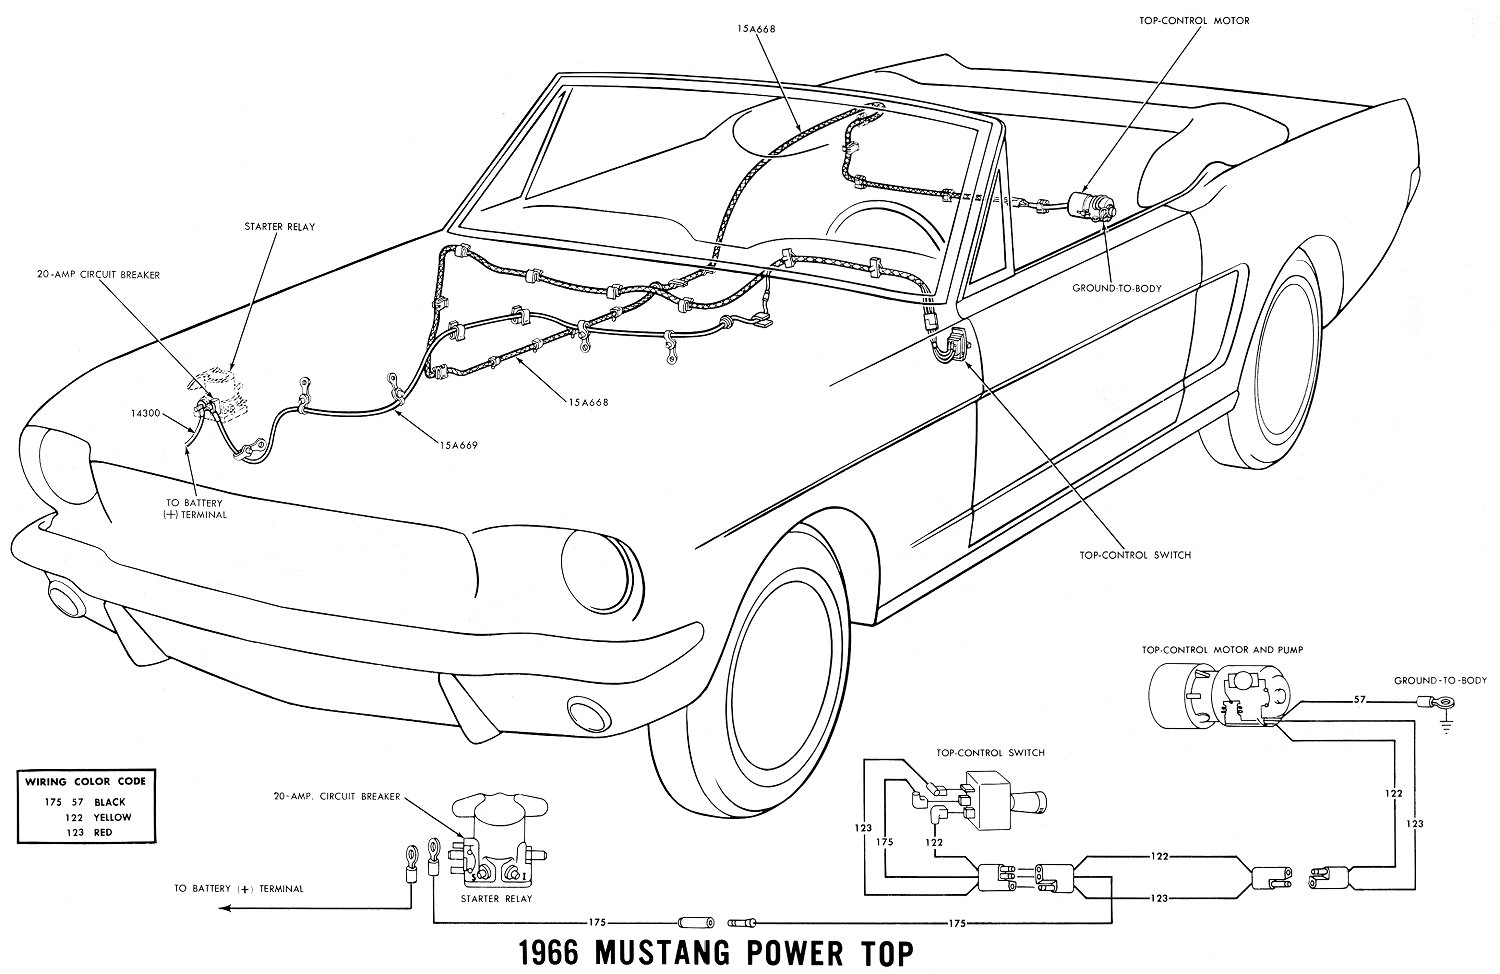 1966 mustang wiring diagrams - average joe restoration 1966 mustang radio wiring diagram 1966 mustang convertible wiring diagram